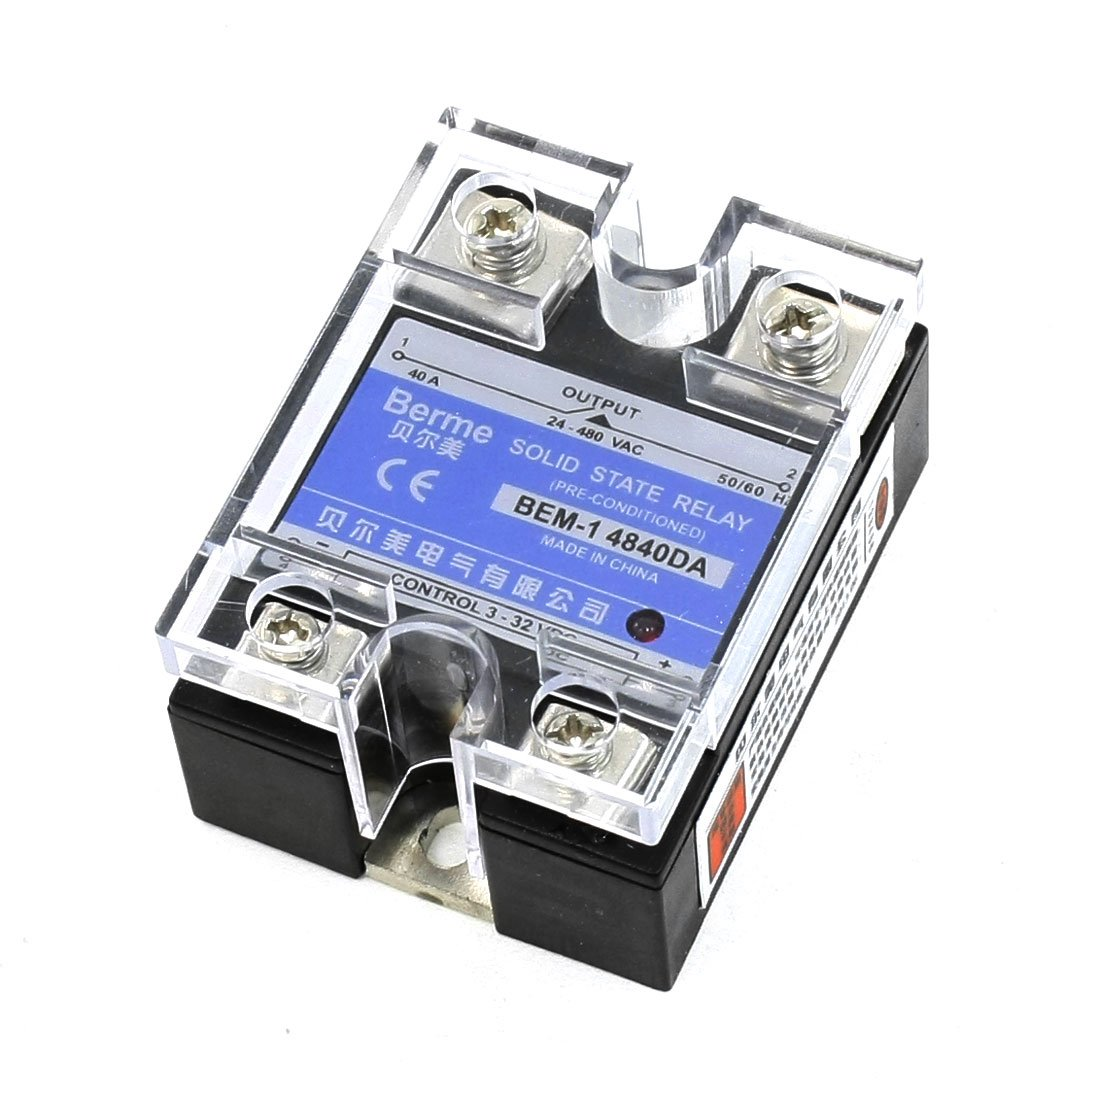 Promotion! 24-480V AC DC to 3-32VDC Output Single Phase SSR Solid State Relay 40A ssr 80aa ac output solid state relays 90 280v ac to 24 480v ac single phase solid relay module rele 12v 80a ks1 80aa